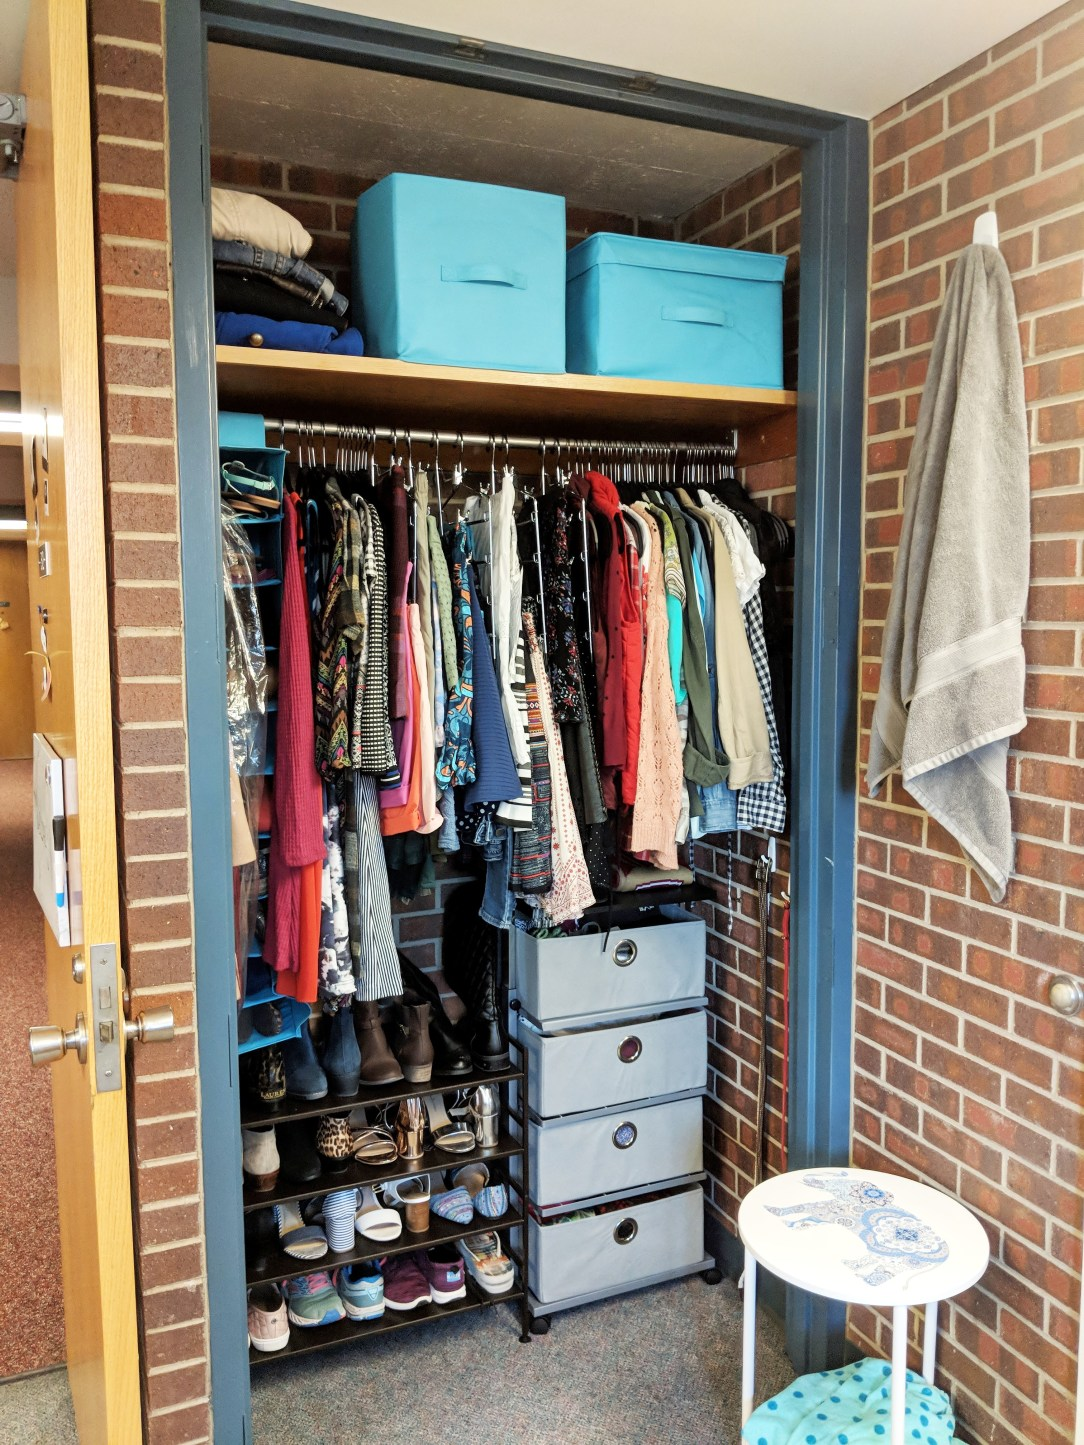 dorm-room-closet-space-saving-closet-organization-bed-bath-and-beyond